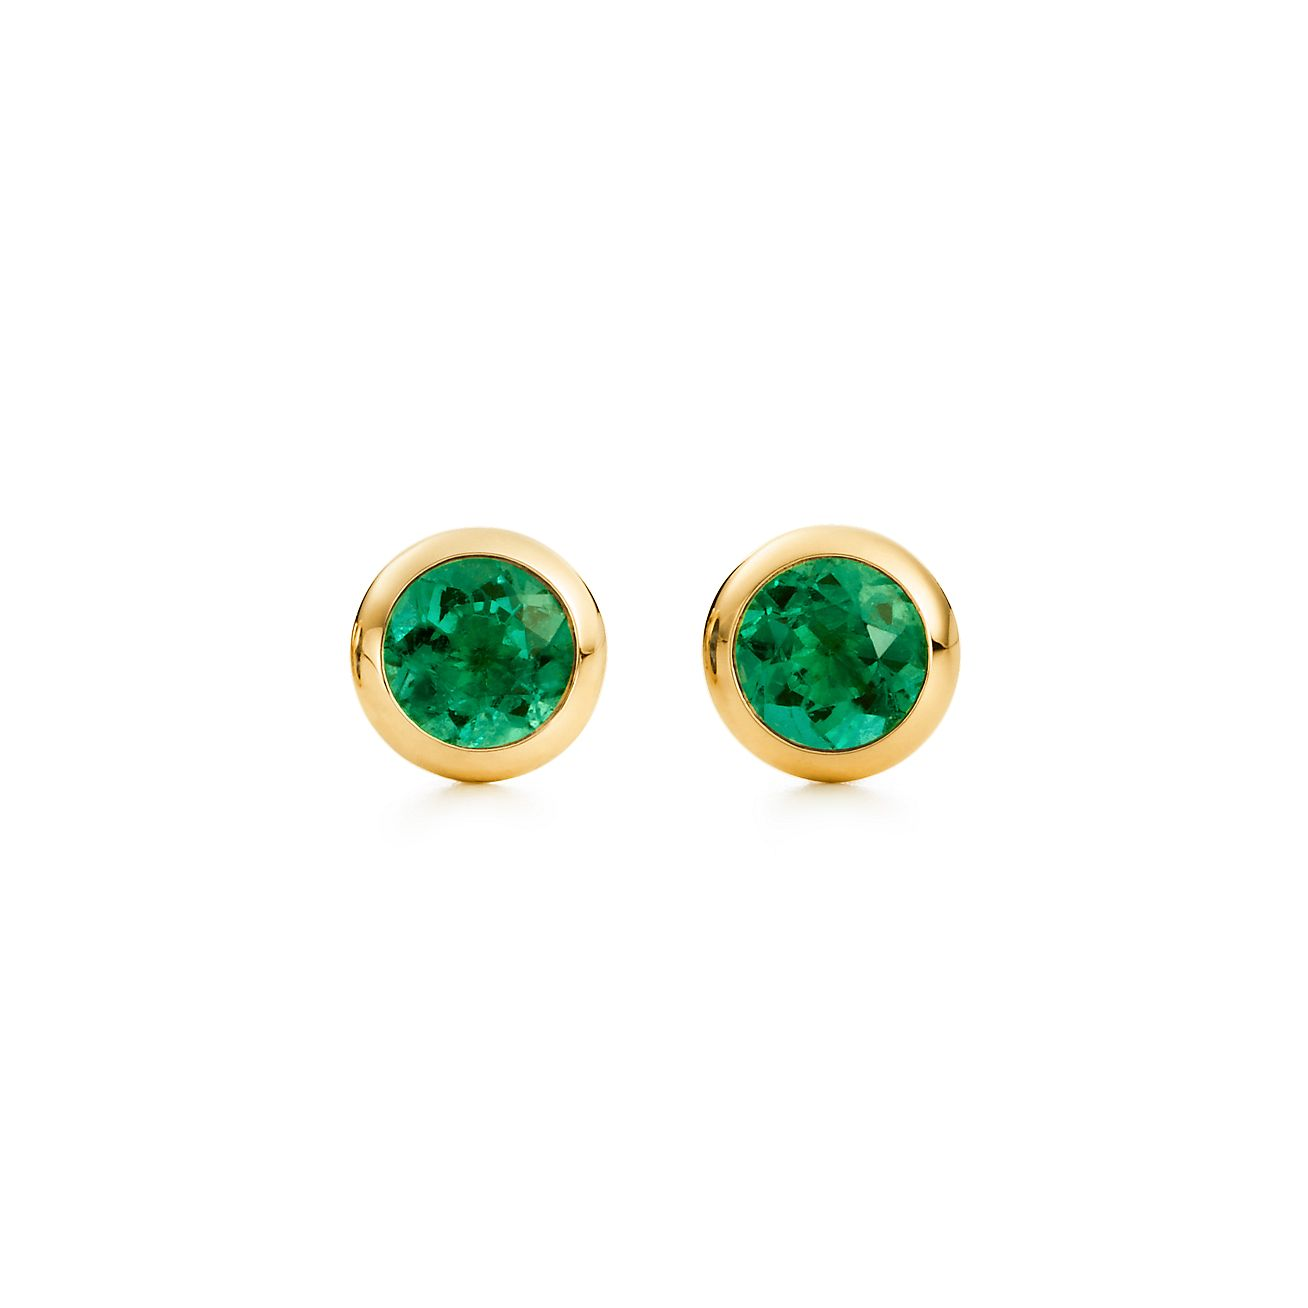 gold jewelry green emerald diamond in nl sterling wg with flower silver earrings women stud earring